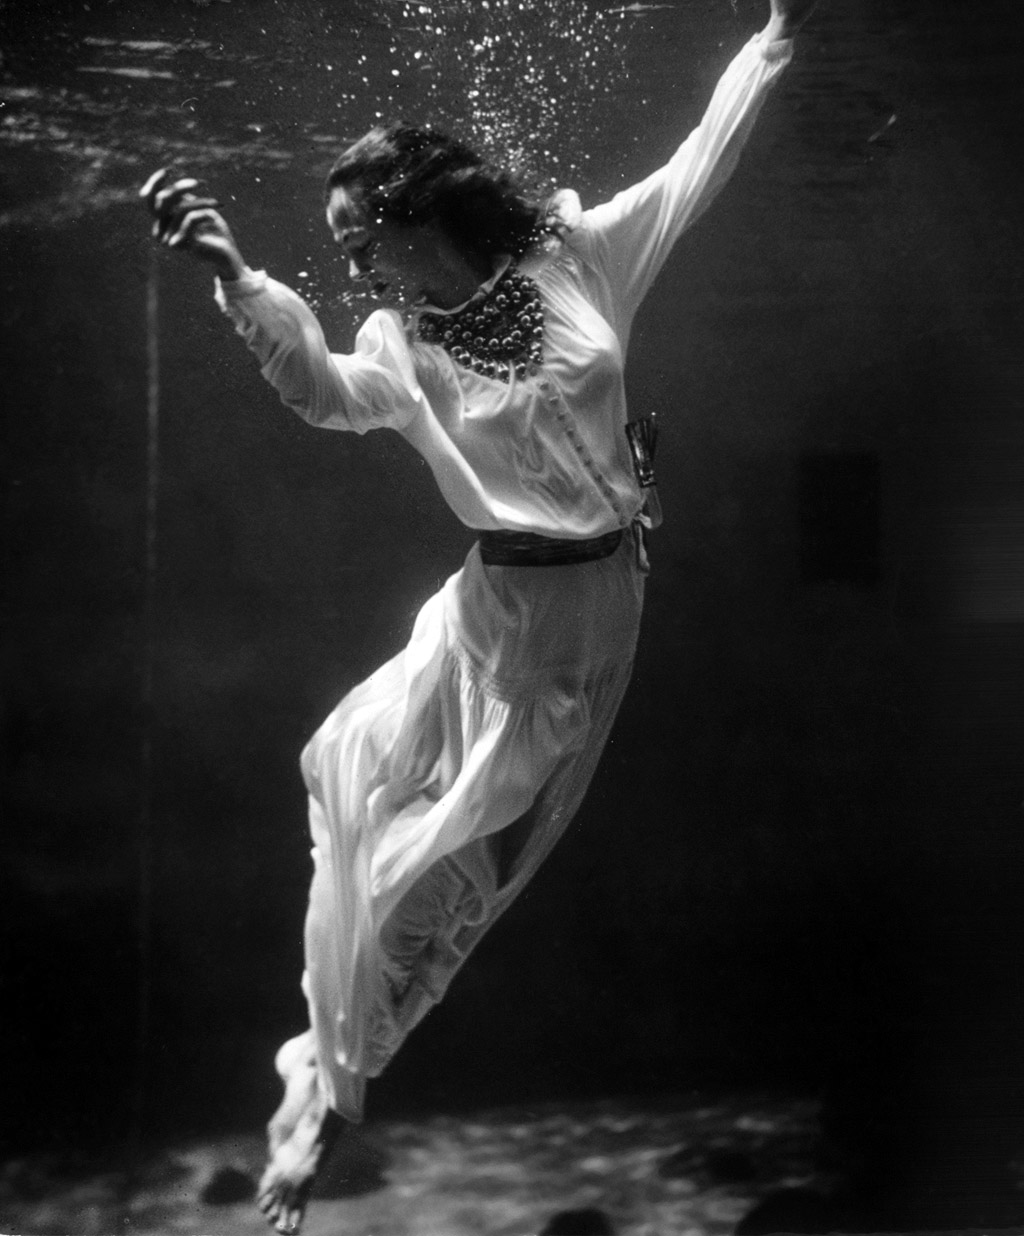 French Sampler: Fabulous Photographer Toni Frissell